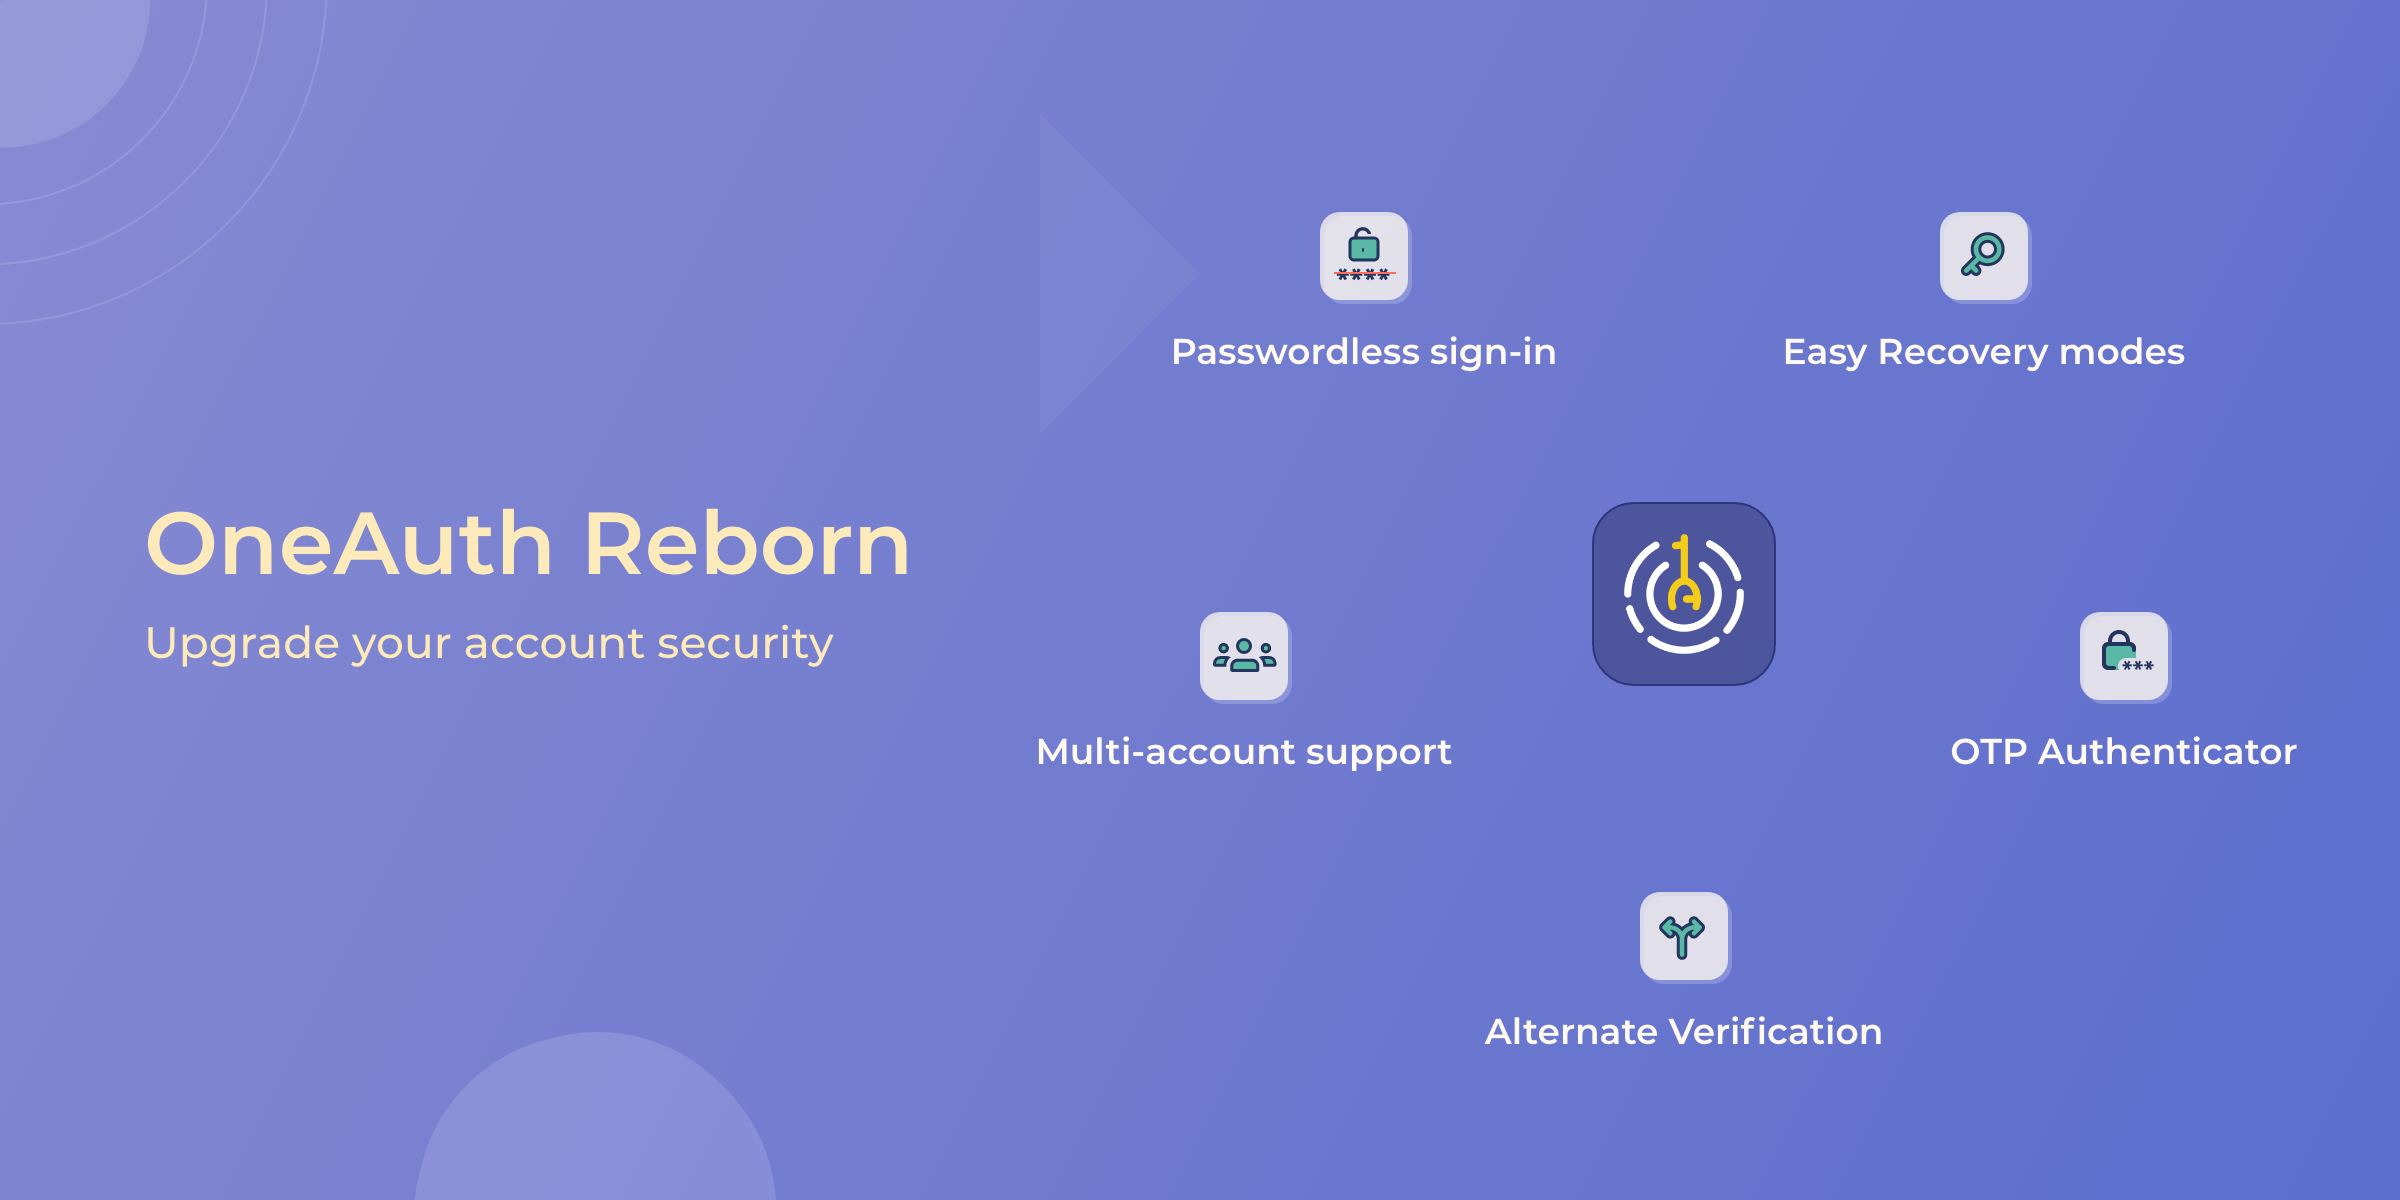 OneAuth Reborn: Upgrade Your Account Security